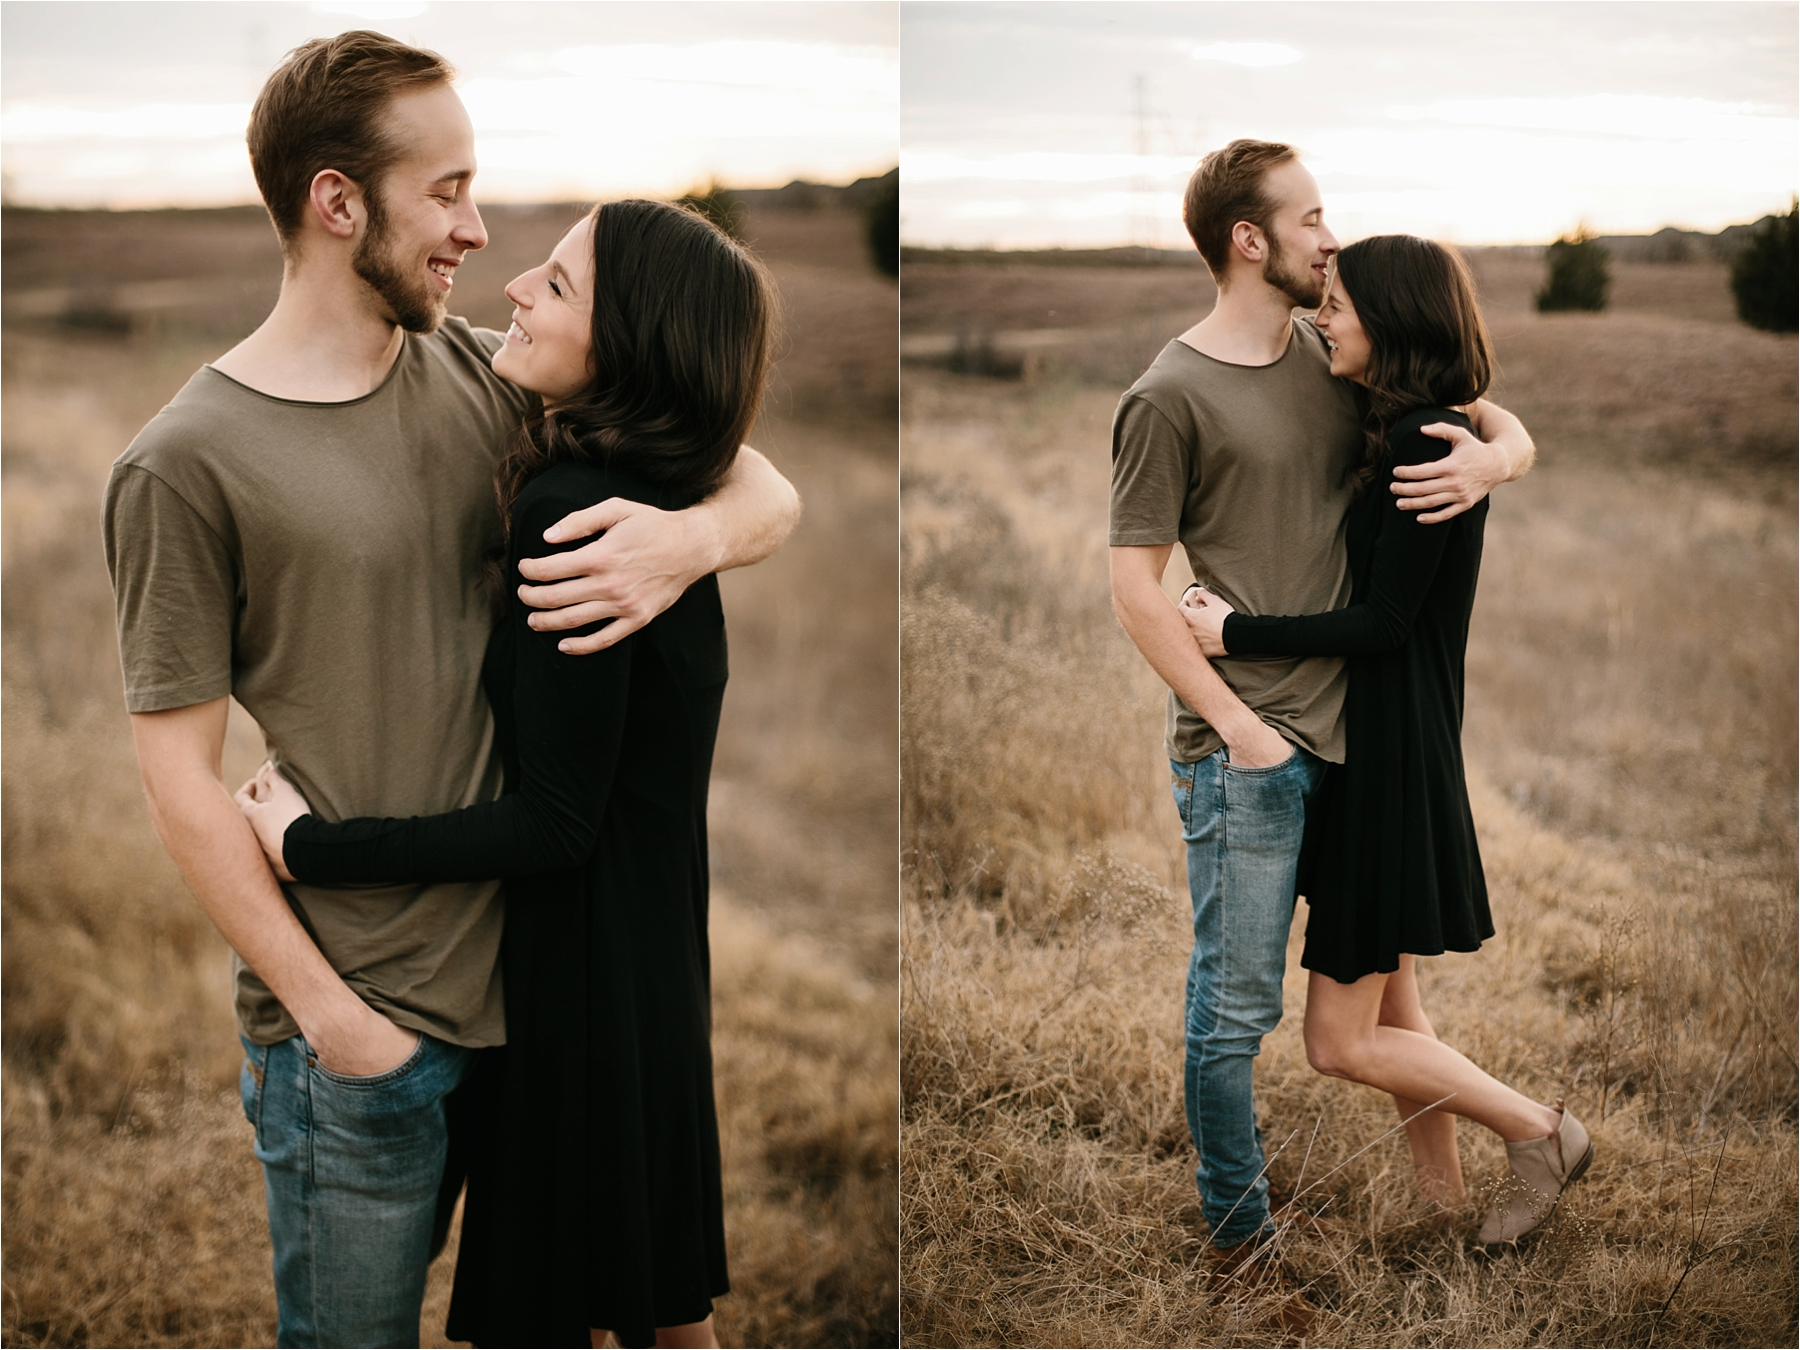 Trey + Phoebe __ a playful, intimate engagement session with dark_neutral outfit inspiration by North Texas Wedding Photographer Rachel Meagan Photography __ 20